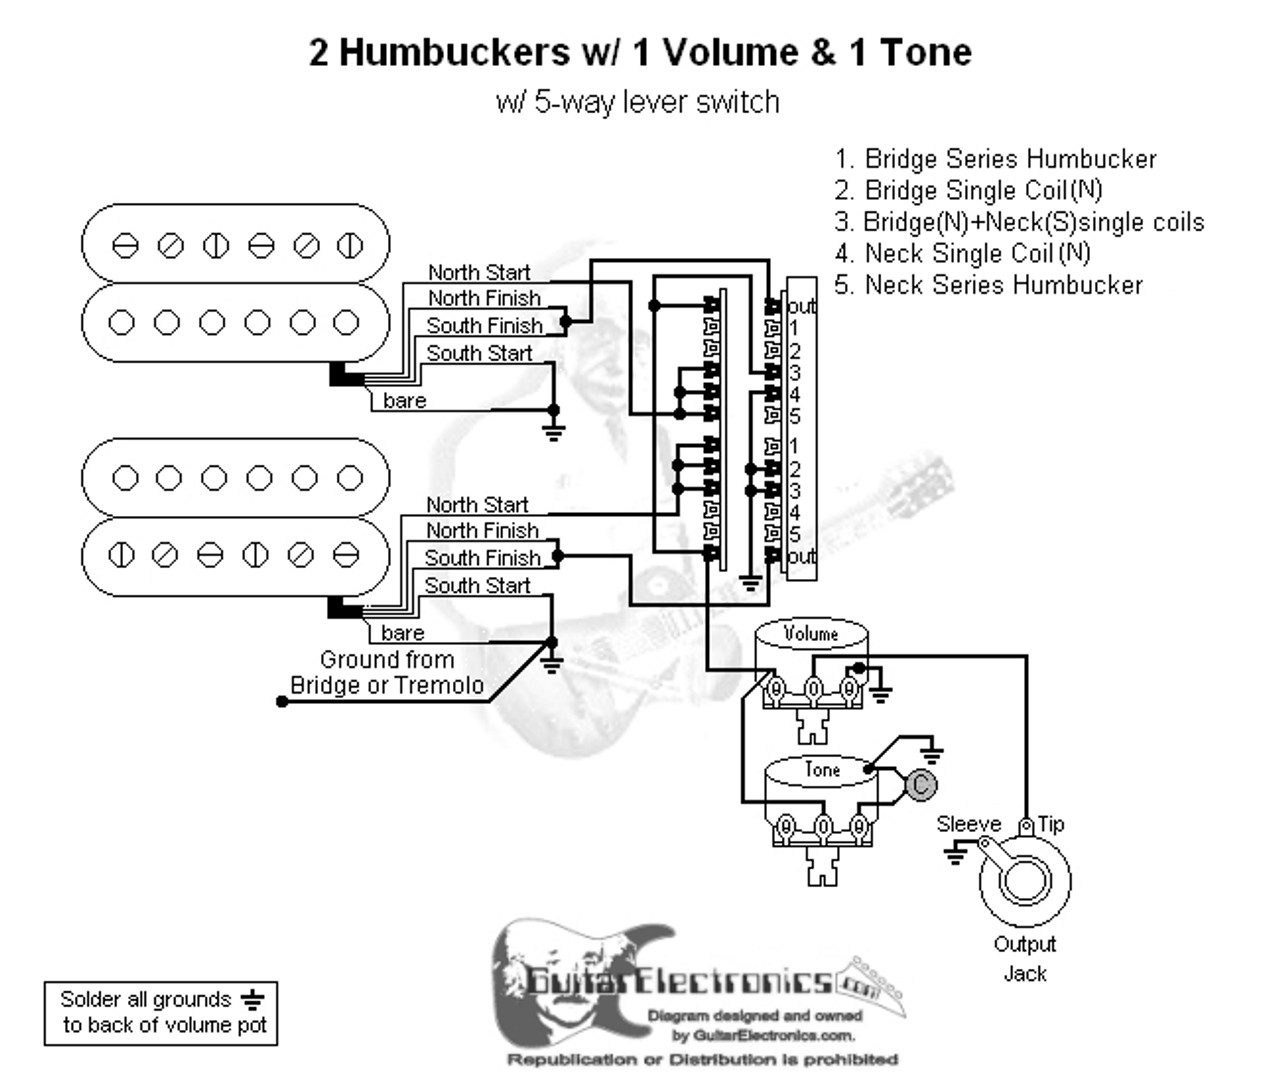 2 humbuckers 5 way lever switch 1 volume 1 tone 01 wiring diagram 2 humbuckers 5way lever switch 1 volume 1 tone 03 [ 1280 x 1083 Pixel ]